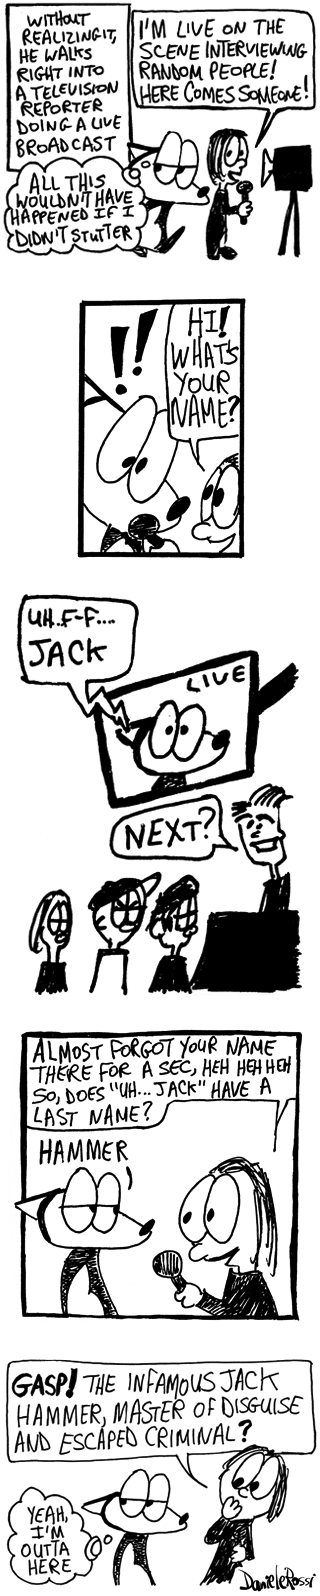 An excerpt of a longer comic strip. The narrator is saying, without realizing it, Franky Banky walks right into a television reporter doing a live broadcast. Franky Banky thinks to himself, all this wouldn't have happened if I didn't stutter. The reporter is speaking towards a TV camera and says I'm live on the scene interviewing random people! Here comes someone! She turns to an alarmed Franky Banky, Hi! What's your name?  Franky Banky is having trouble saying his name so he randomly blurts out Jack. The reporter laughs and says almost forgot your name there for a second! So, does Jack have a last name?    Franky Banky blurts out a random word. Hammer. The reporter gasps and asks, the infamous Jack Hammer, master of disguise and escaped criminal? Franky Banky thinks to himself, yeah I'm out of here.